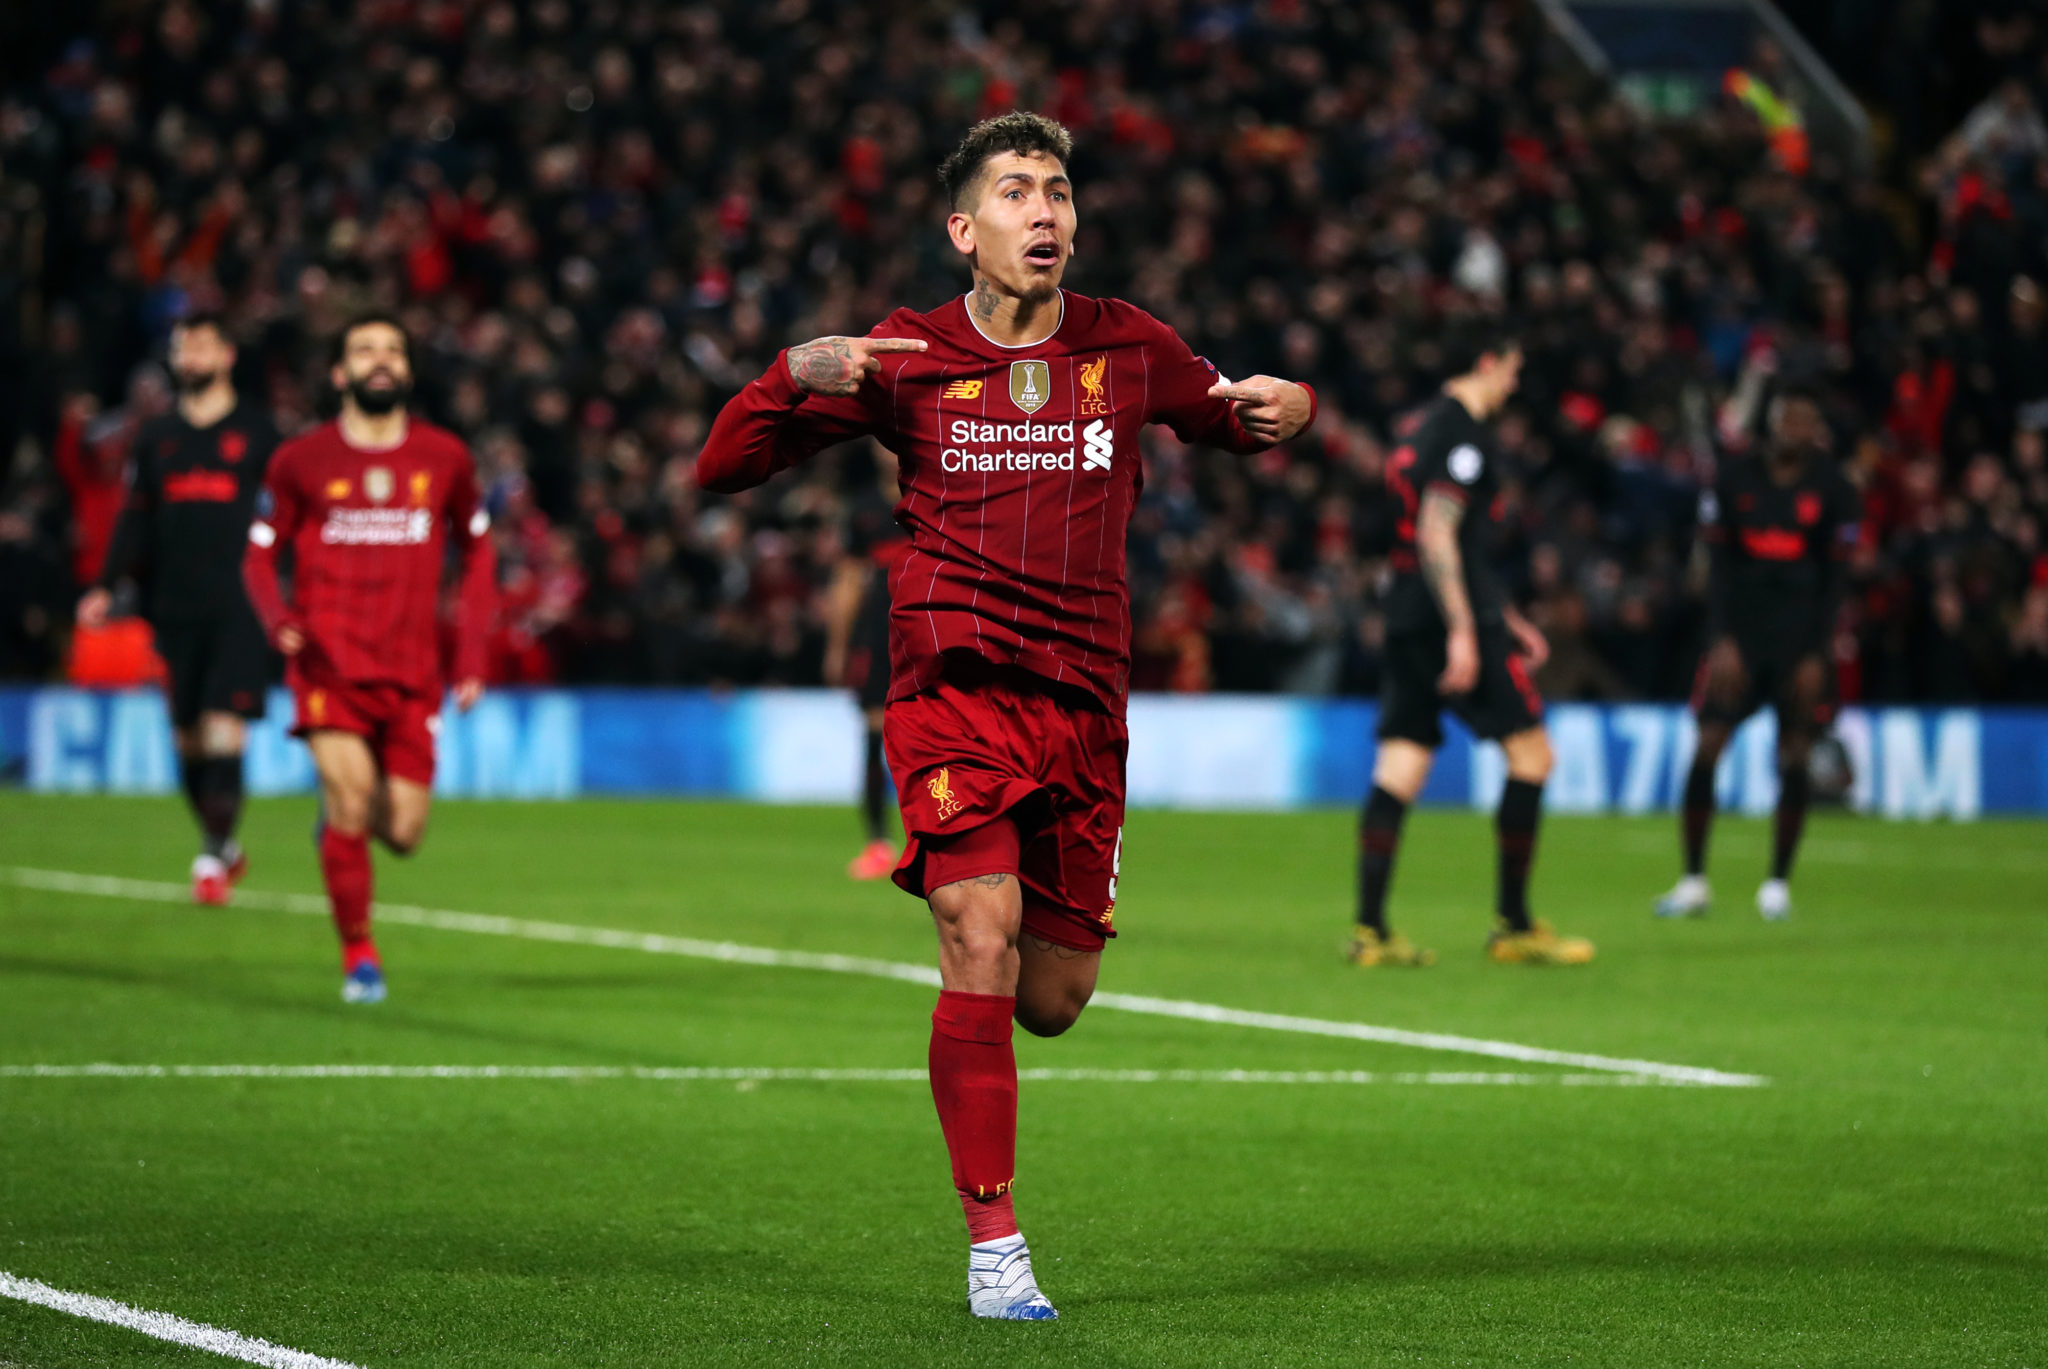 Roberto Firmino of Liverpool celebrates a goal in the Champions League.